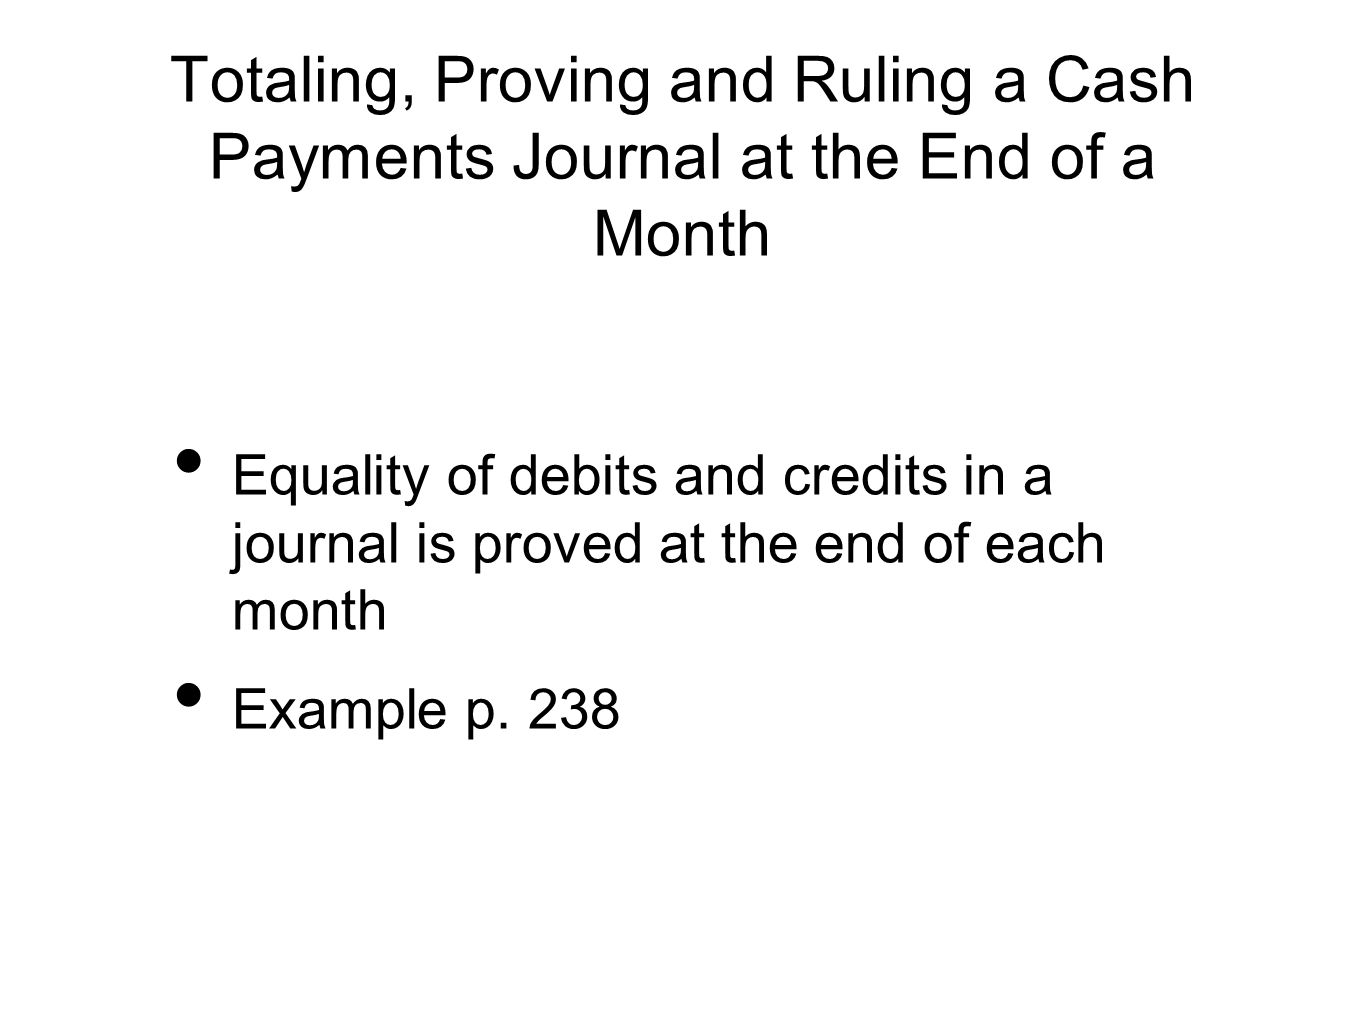 Totaling, Proving and Ruling a Cash Payments Journal at the End of a Month Equality of debits and credits in a journal is proved at the end of each mo